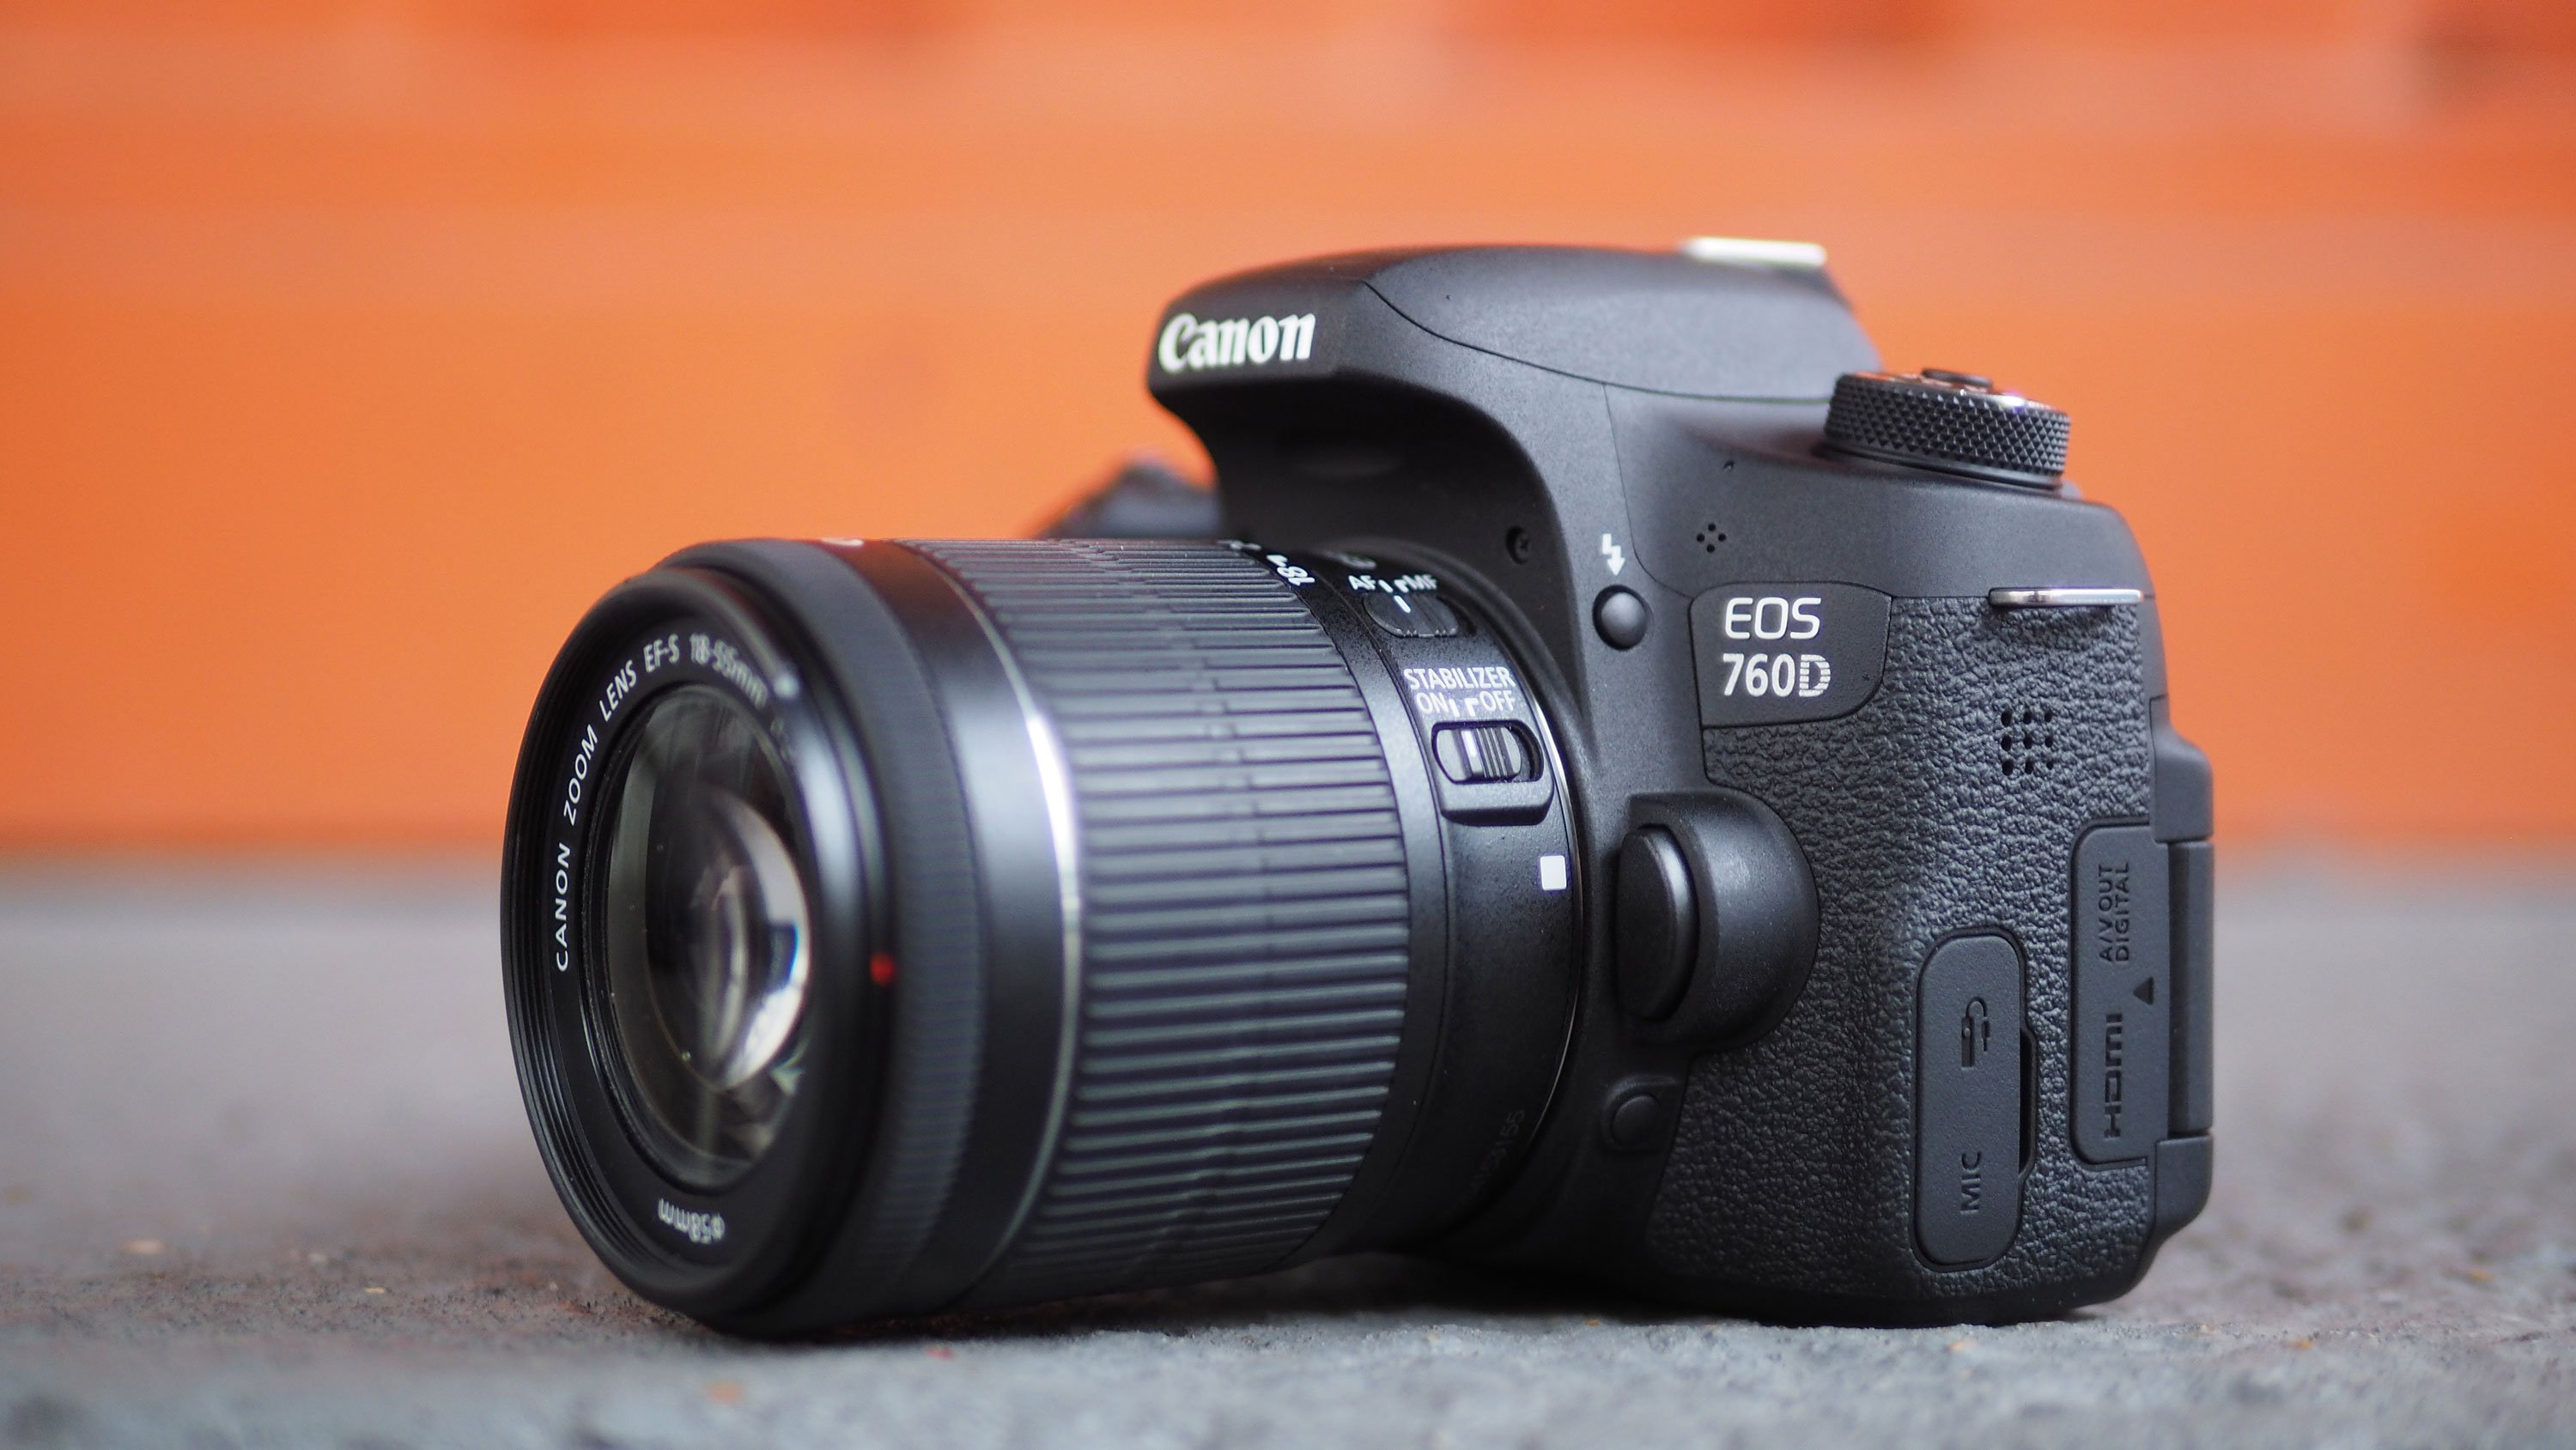 Canon Eos Rebel T6s 760d Review Cameralabs 1200d Kit 18 55mm Iii Non Is